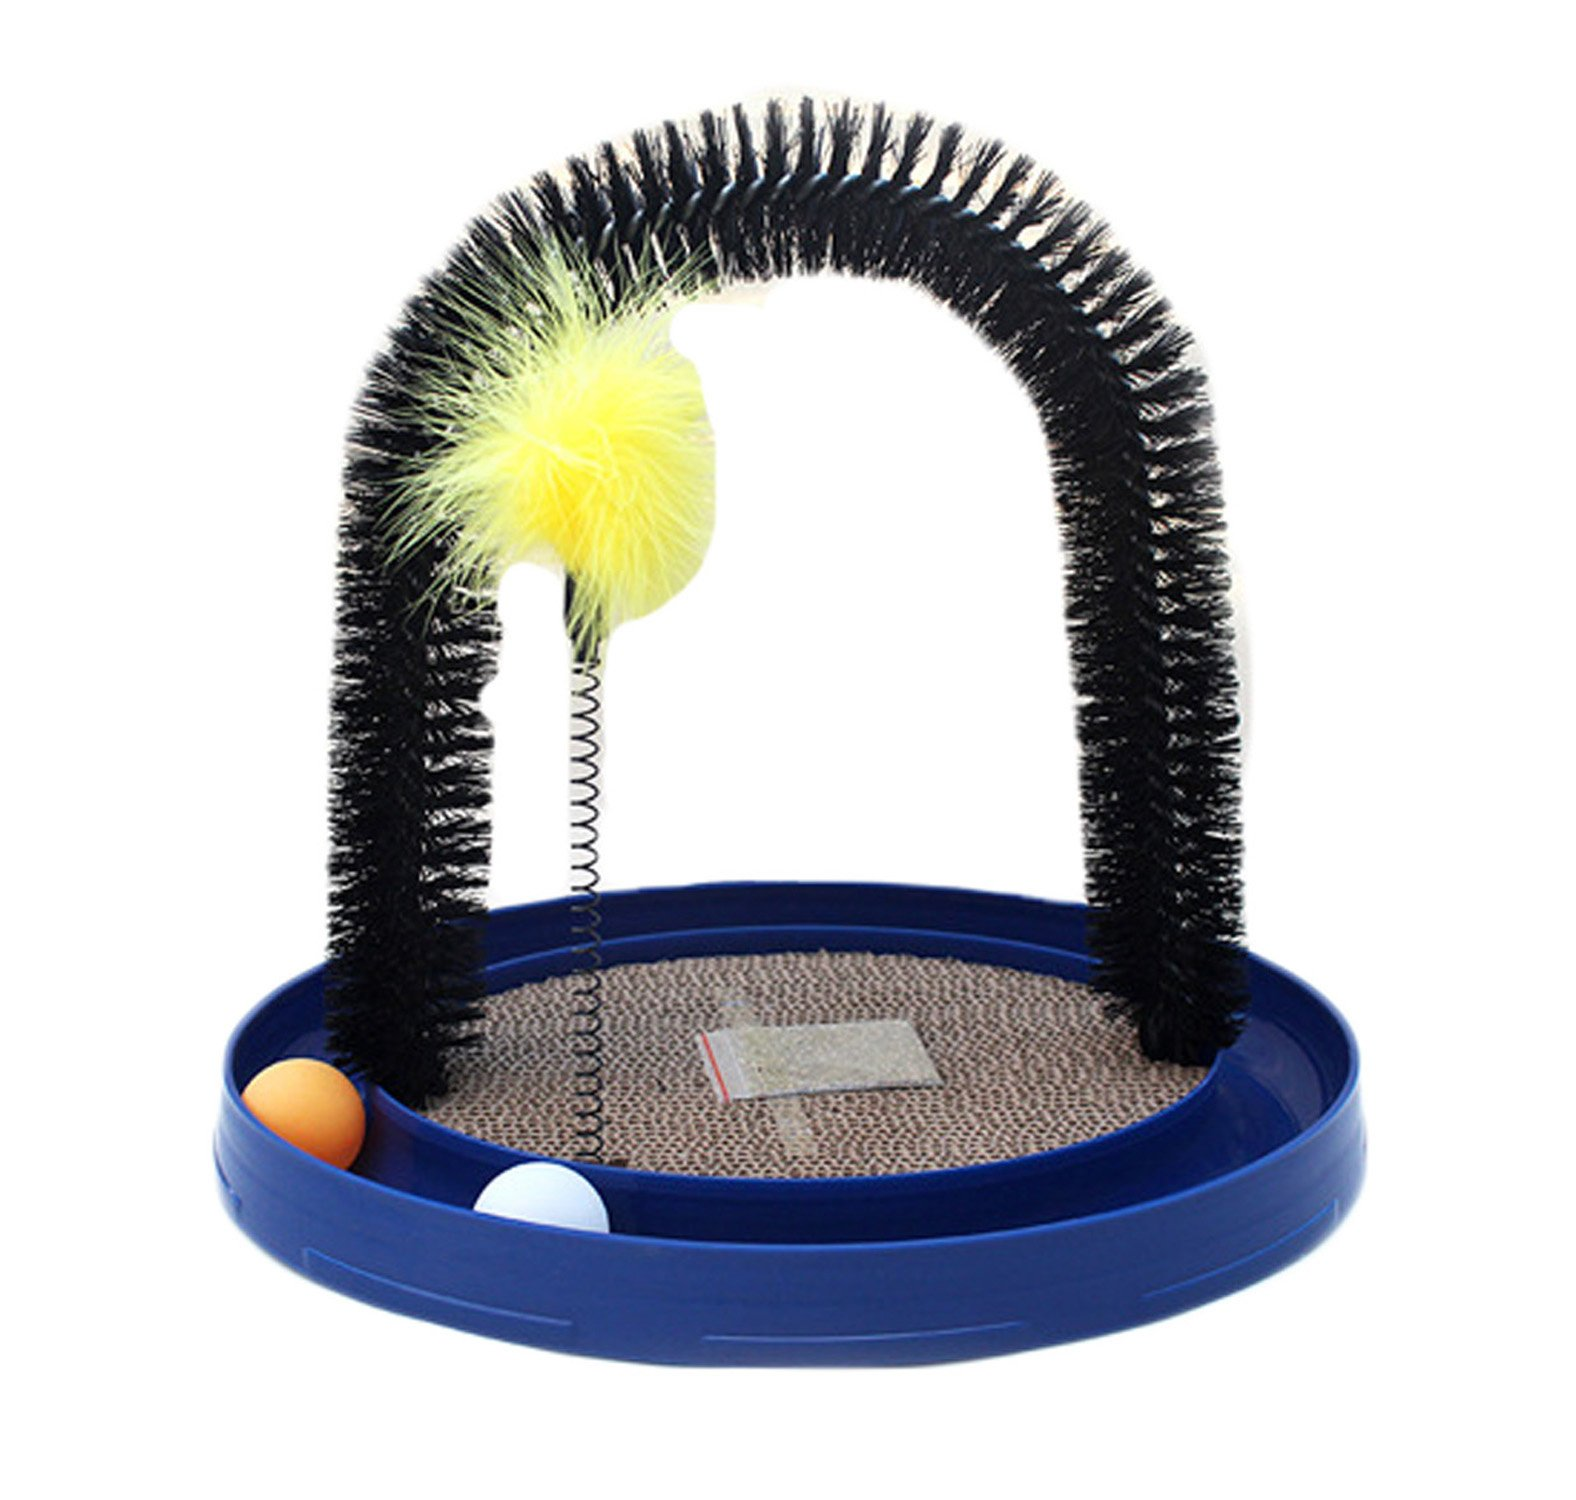 Turbo Scratcher Cat Toy, Cat Turbo Toy Durable and Replaceable with Catnip-Self Groomer And Massager Arch-Interactive Training Exercise Mouse Play Toy with Turbo and Ball,Blue